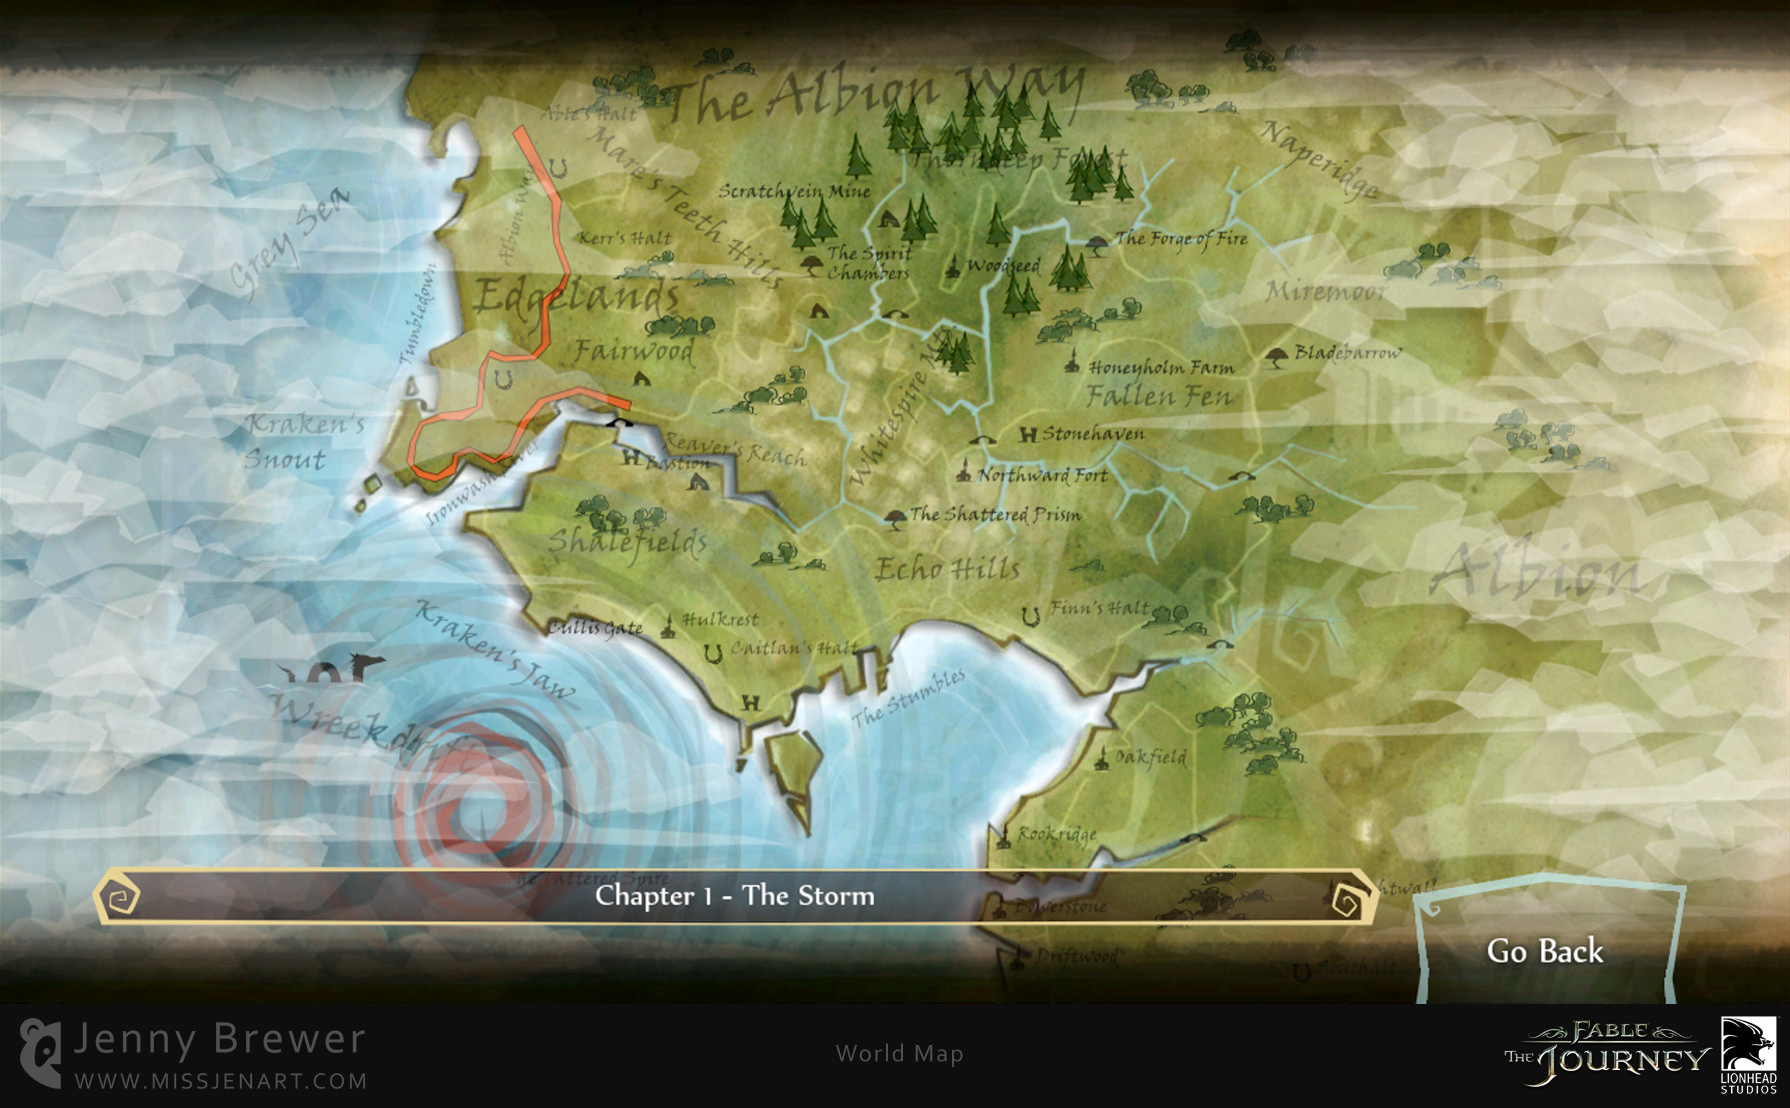 The Map screen shows your progress through the story of the game and is filled with little animations such as mini retelling of parts of the story, parting clouds, growing trees and hidden sea monsters for those with a keen eye!